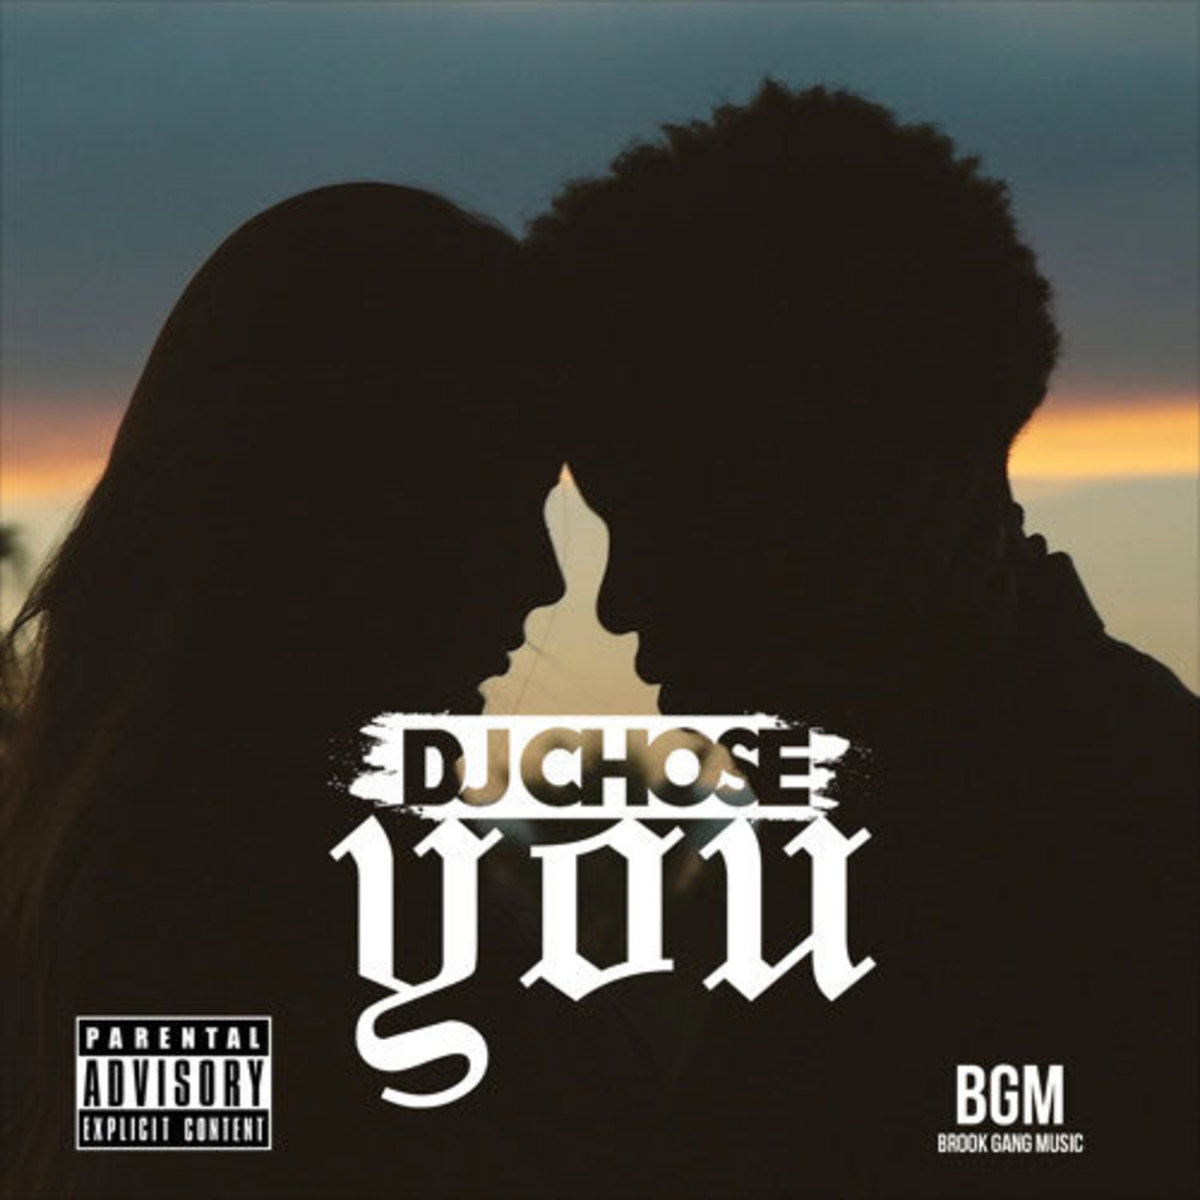 dj-chose-you.jpg